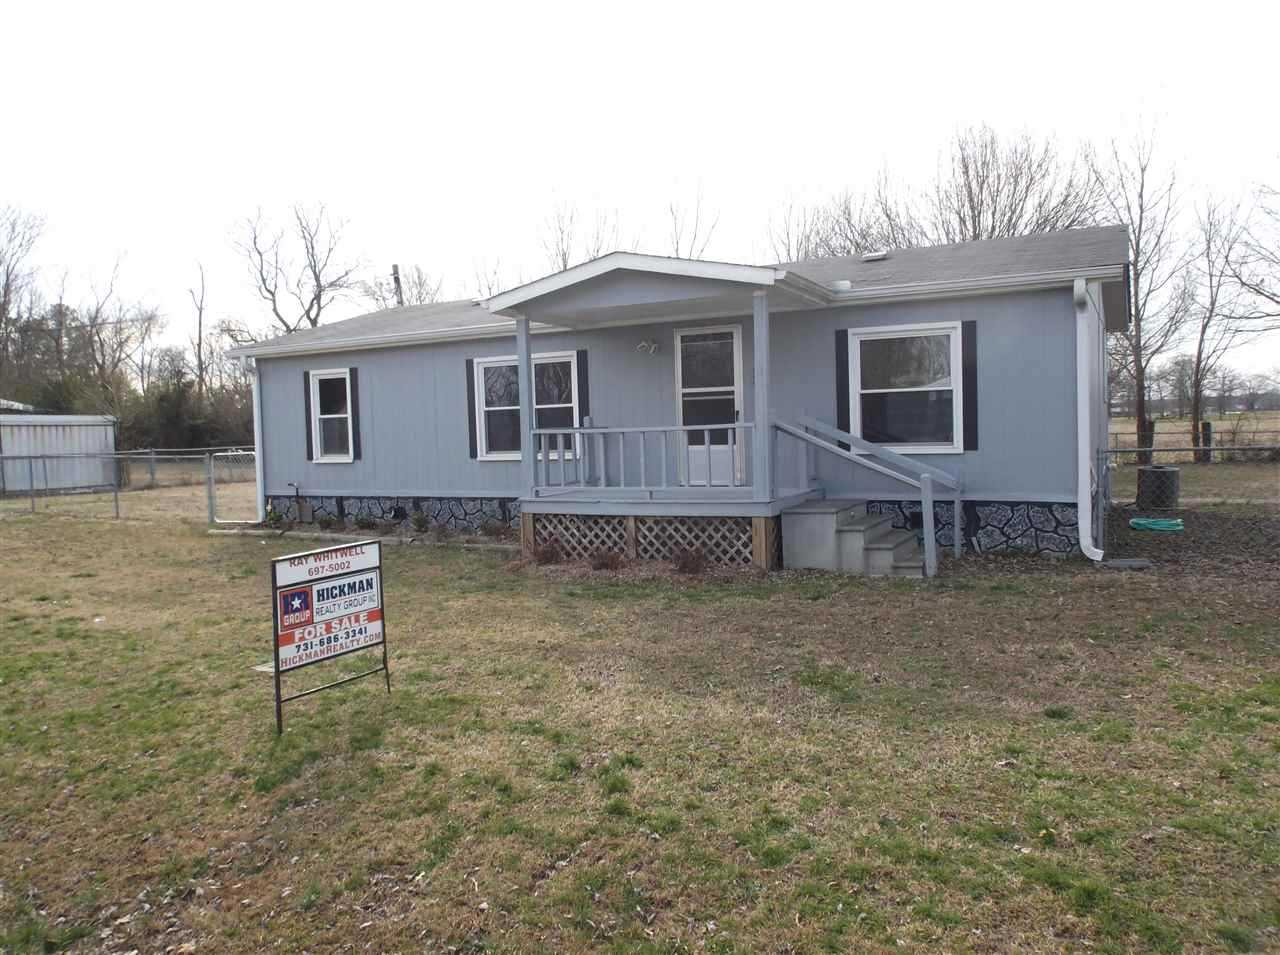 65 Elaine Street,Atwood,Tennessee 38220,3 Bedrooms Bedrooms,2 BathroomsBathrooms,Residential,65 Elaine Street,182882